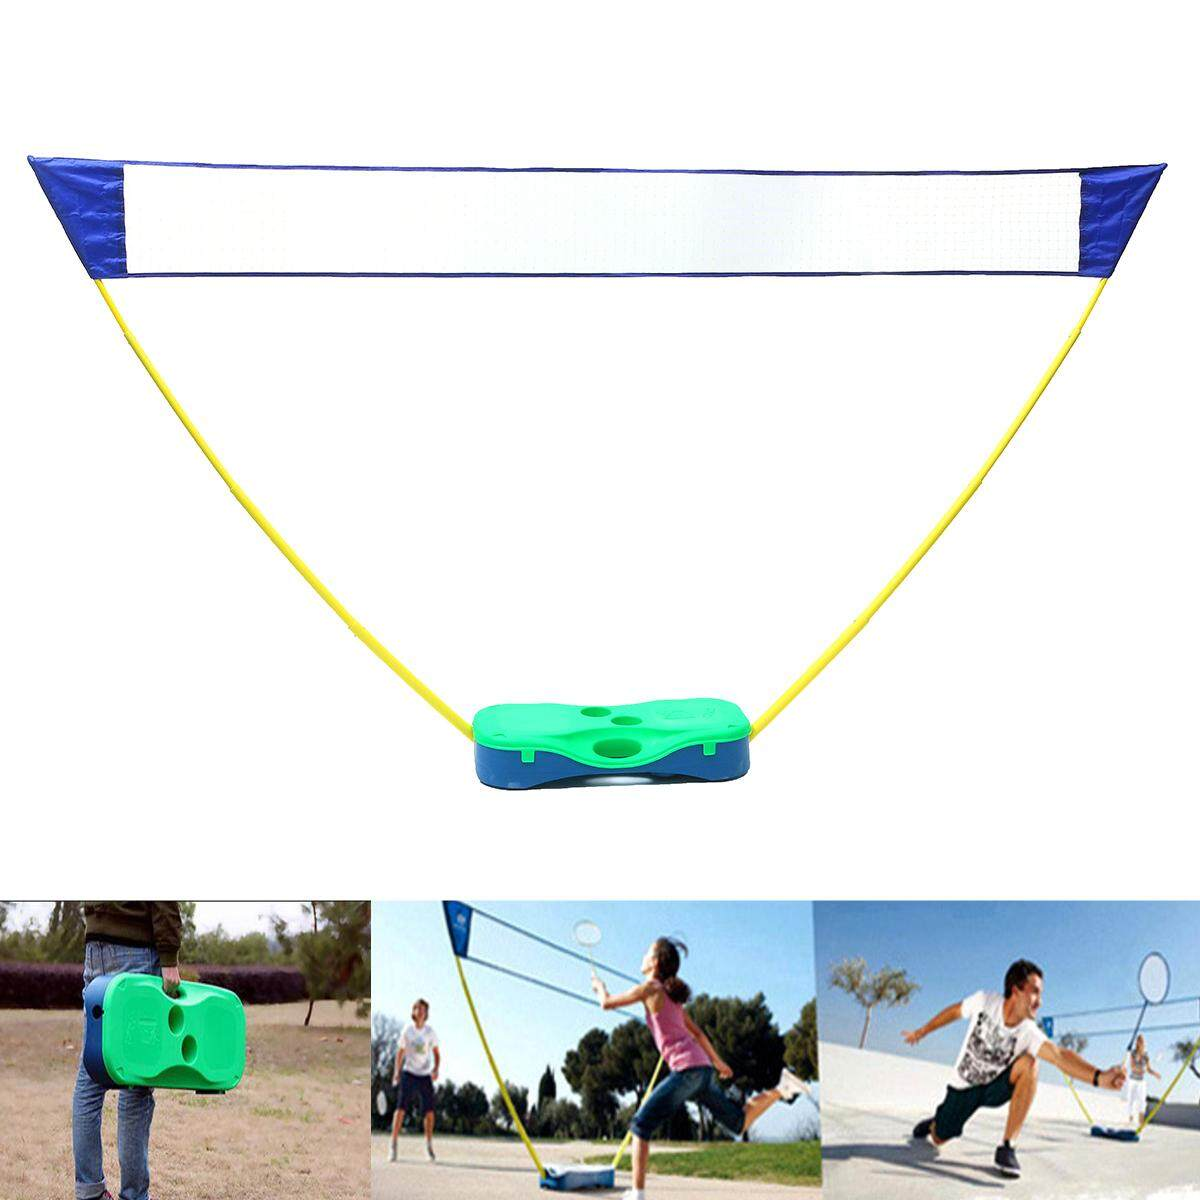 3in1 Outdoor Portable Badminton Set Tennis Volleyball Net With Stand Battledore By Glimmer.